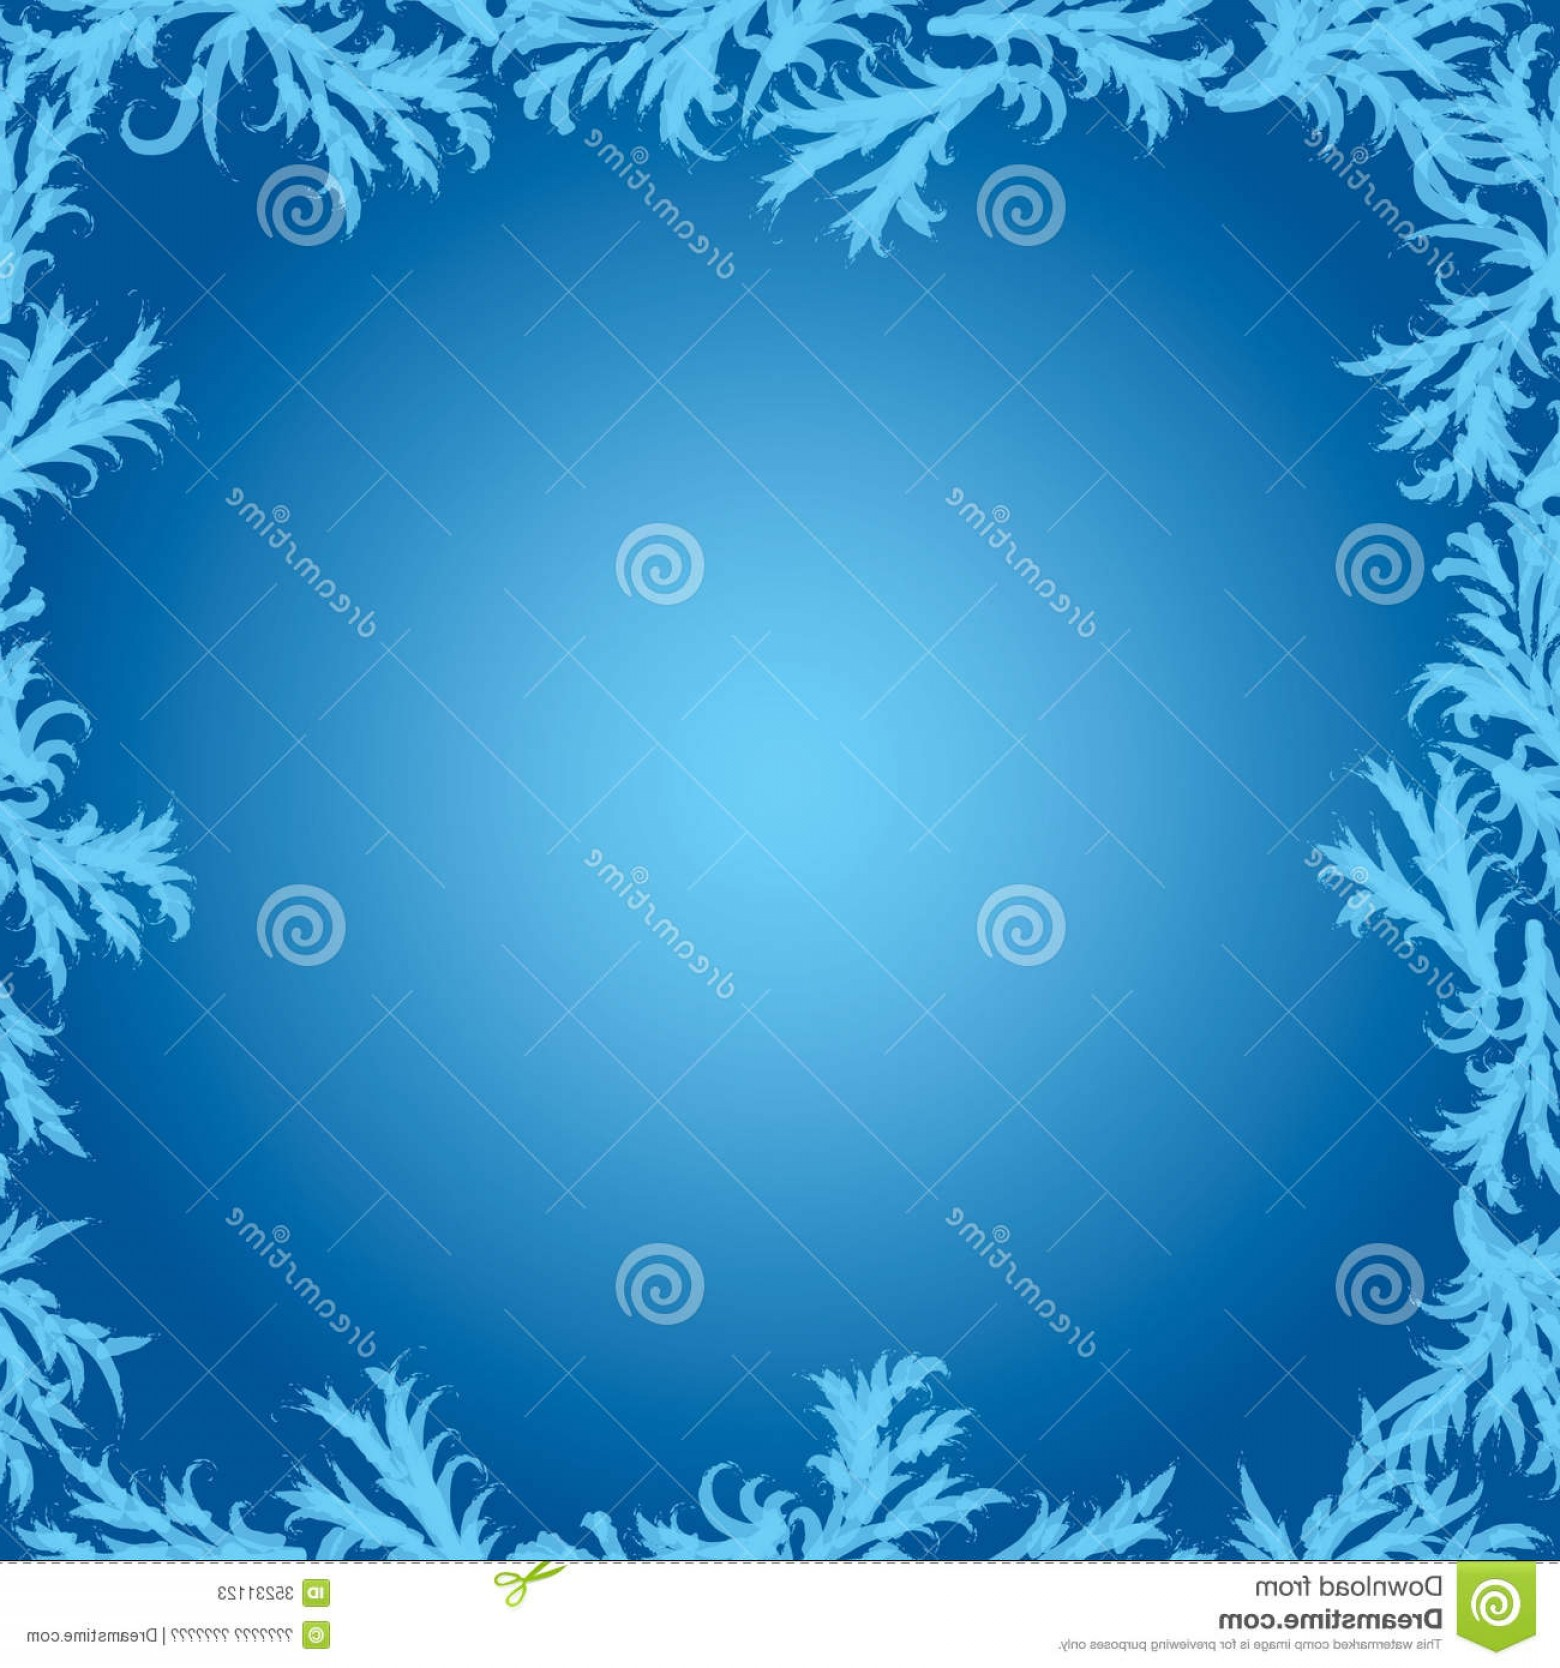 Frost Border Vector: Stock Photos Vector Frame Frost Patterns Glass Frosty Image